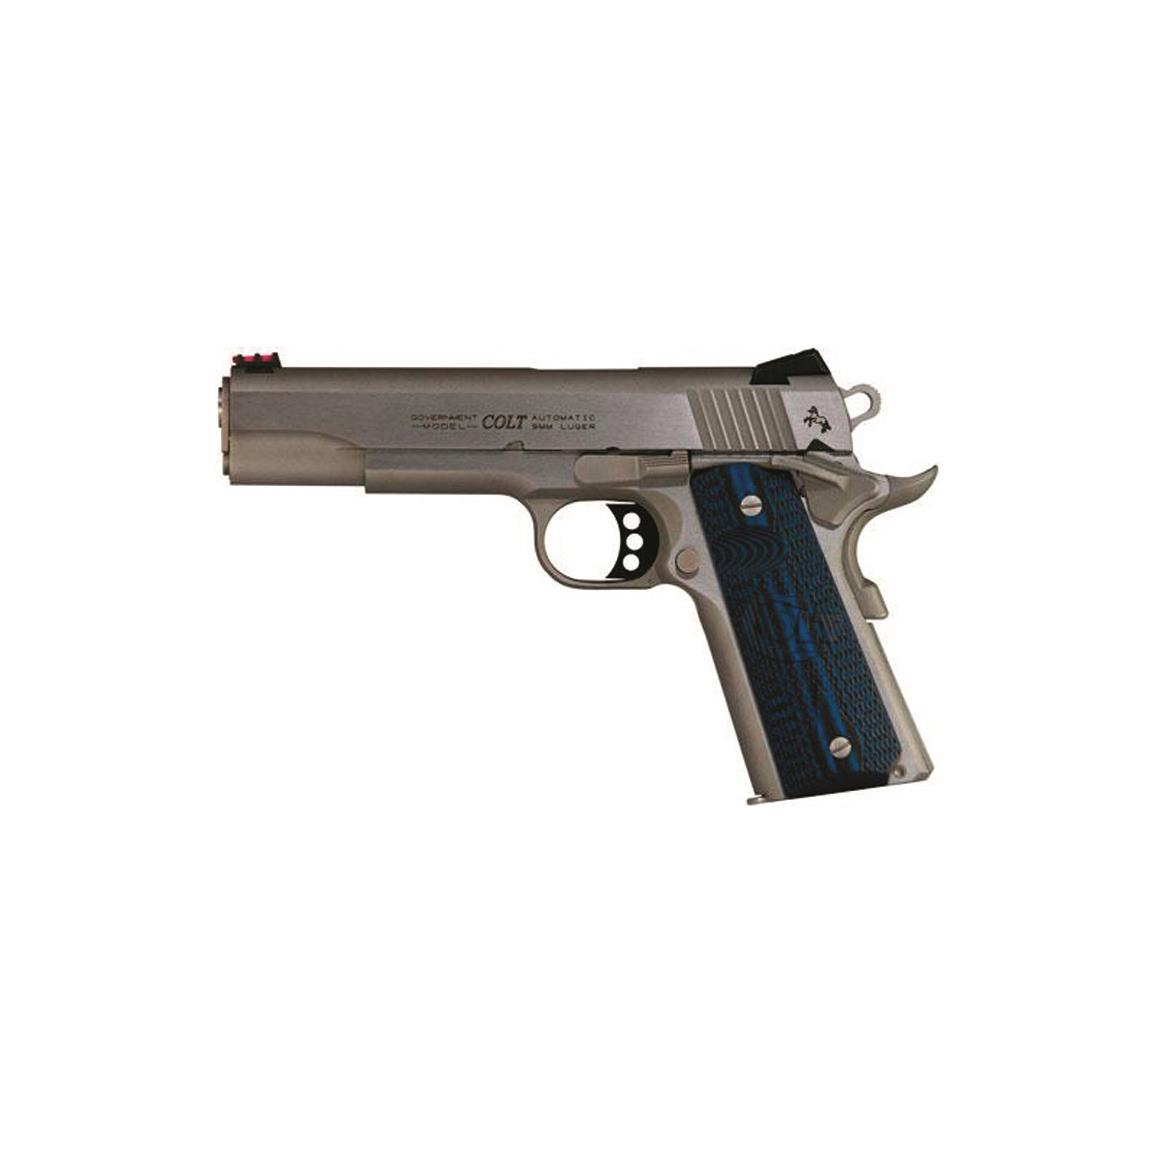 "Colt Government Competition 1911 Stainless Steel, Semi-Automatic, .38 Super, 5"" Barrel, 9+1 Rounds"